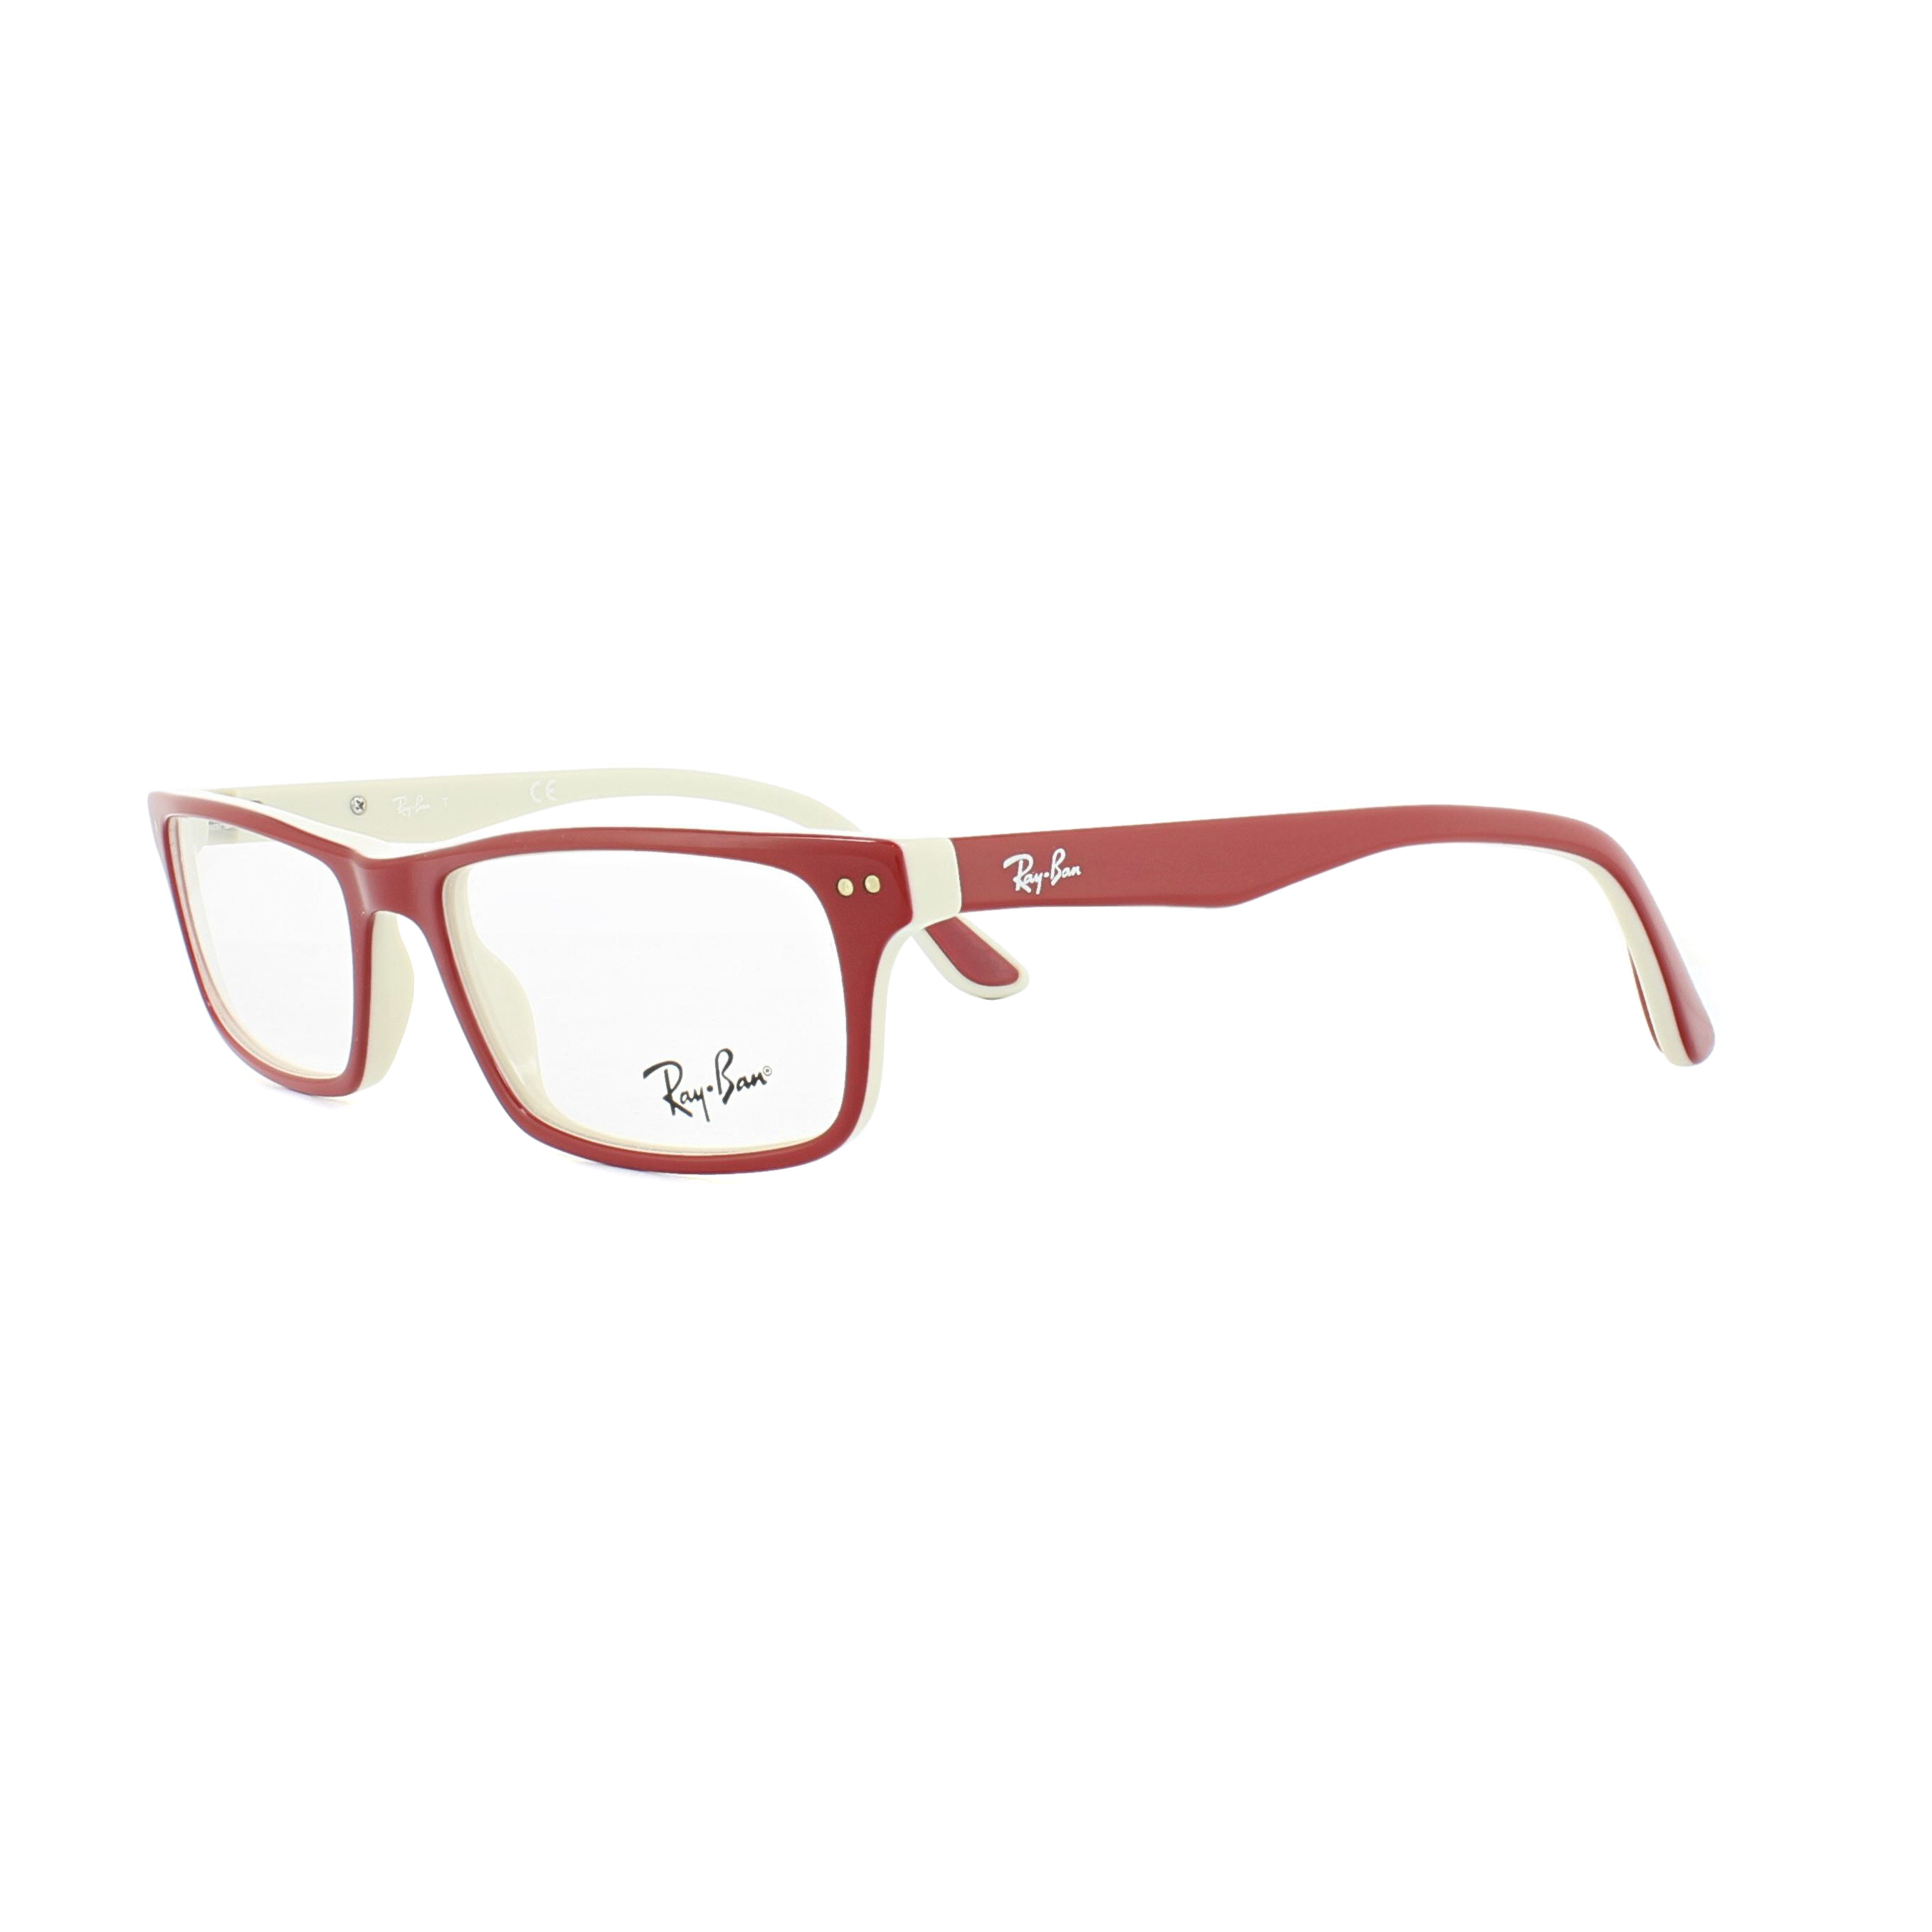 Ray-Ban Glasses Frames 5277 5136 Red Beige 52mm Mens Womens ...